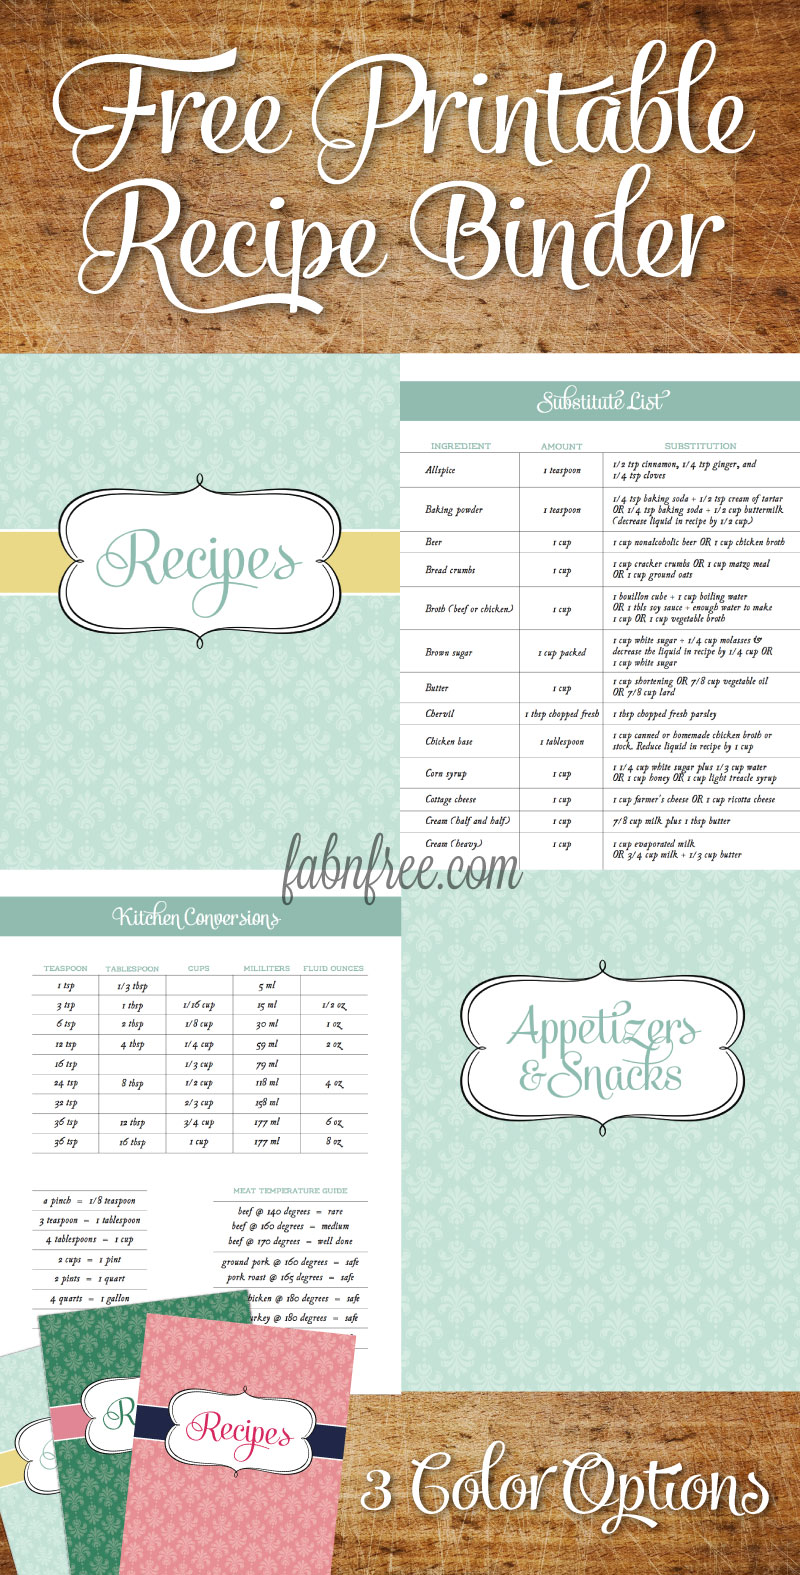 5 best images of free printable recipe binder templates for Free online cookbook template